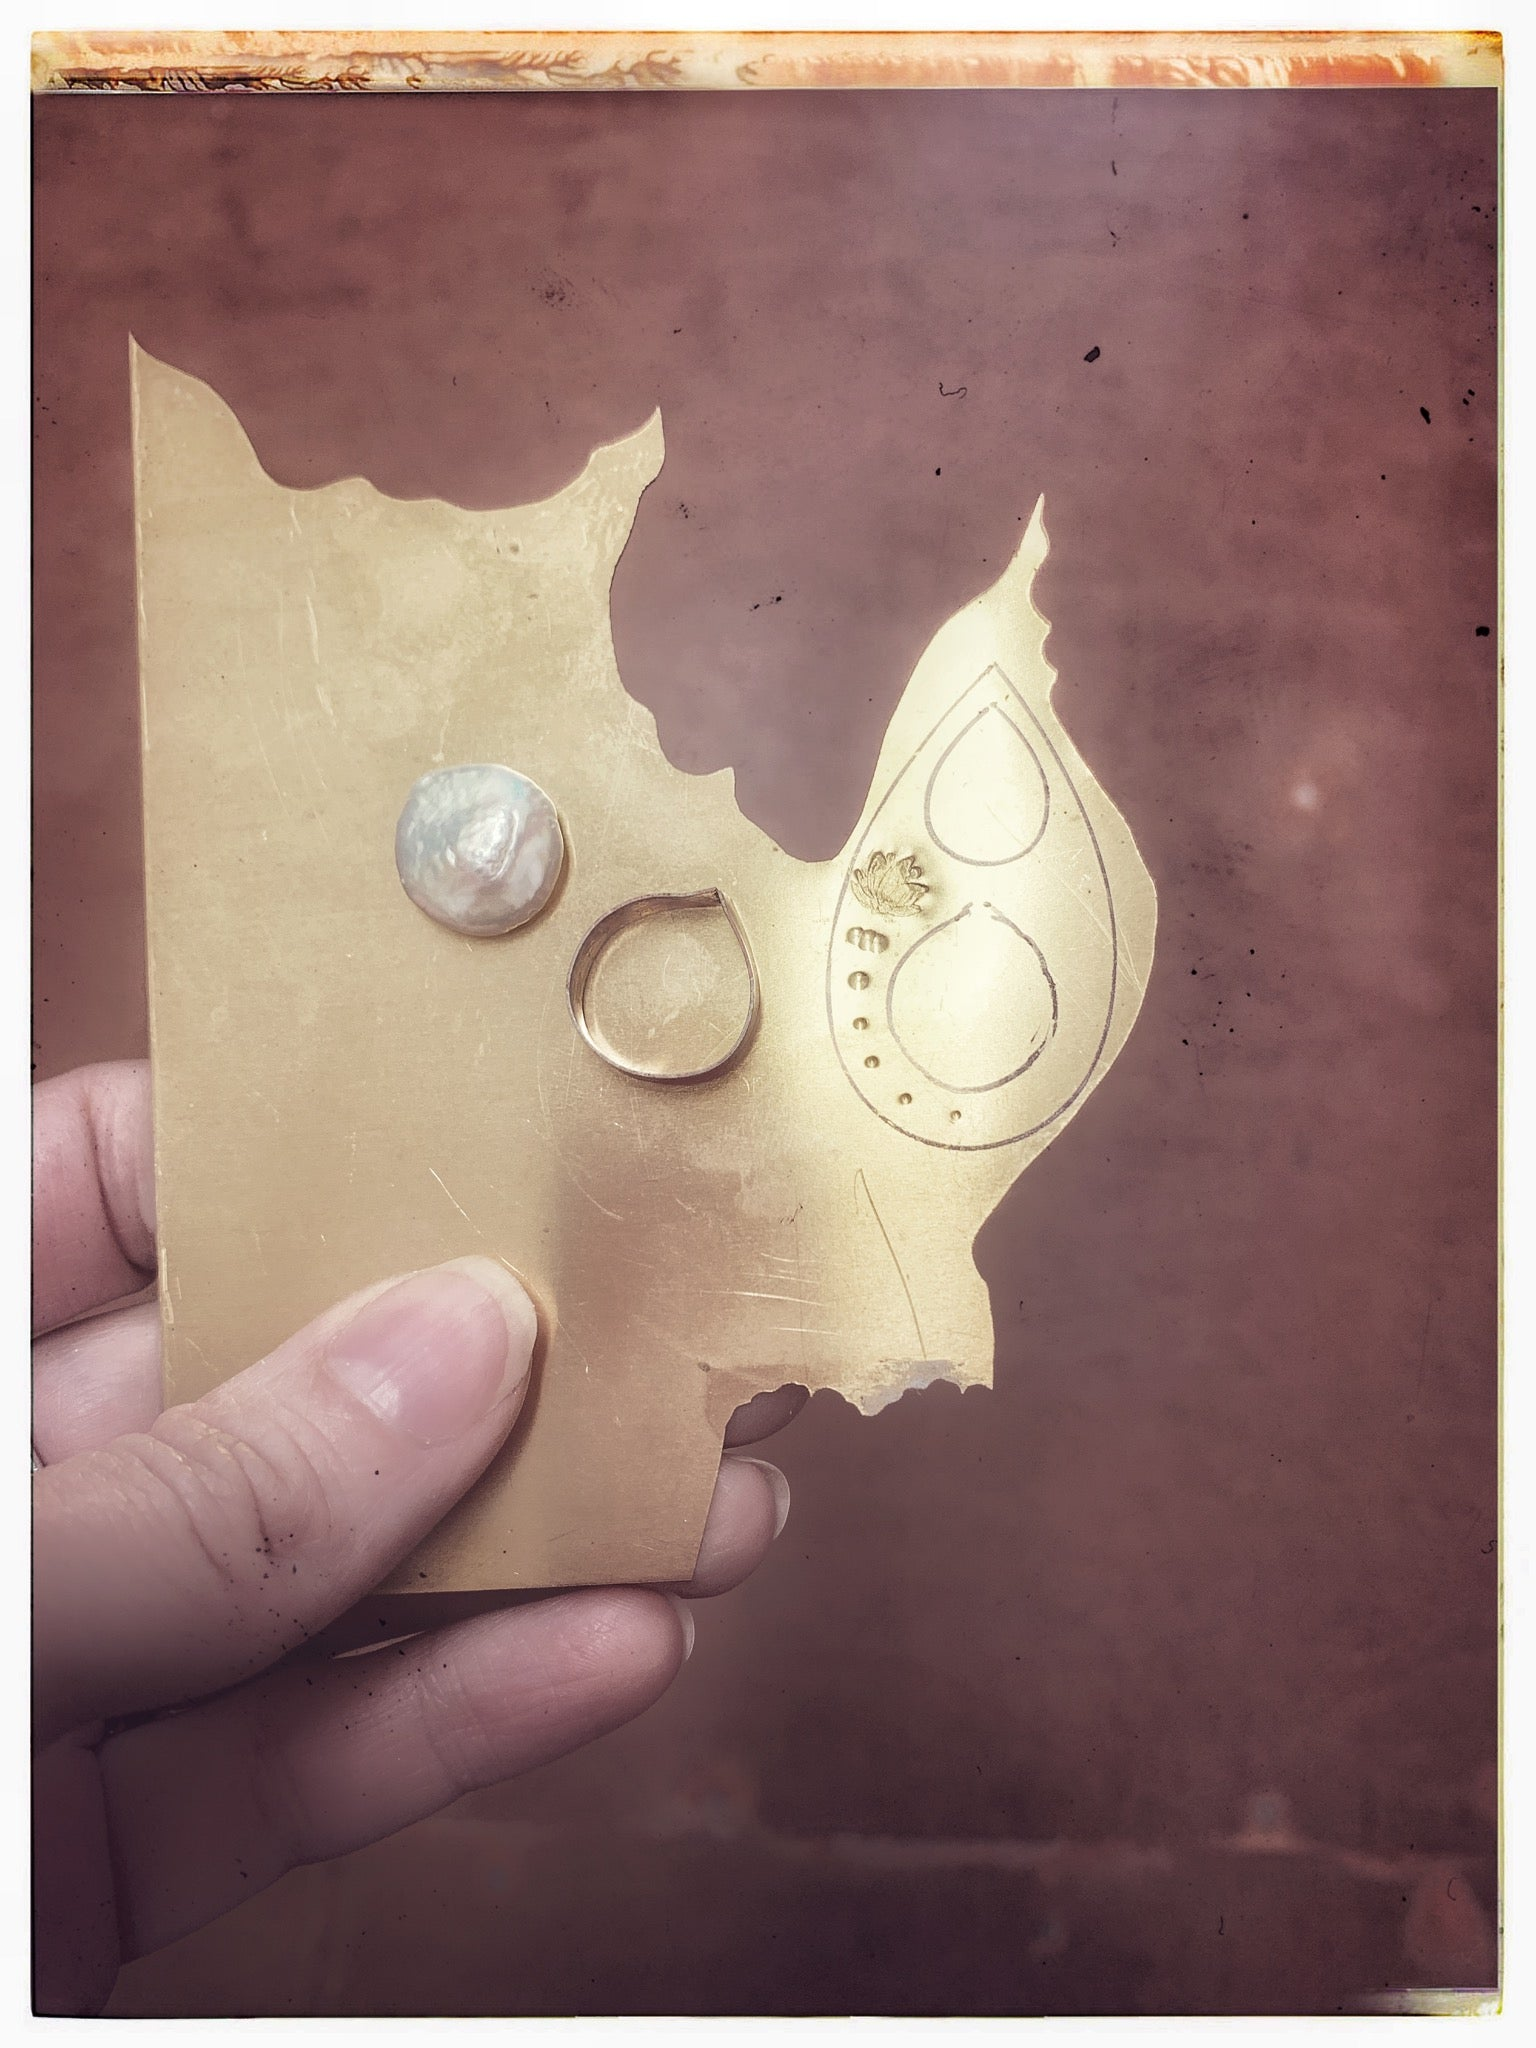 The beginnings of a new pearl and brass pendant by Erica Bapst